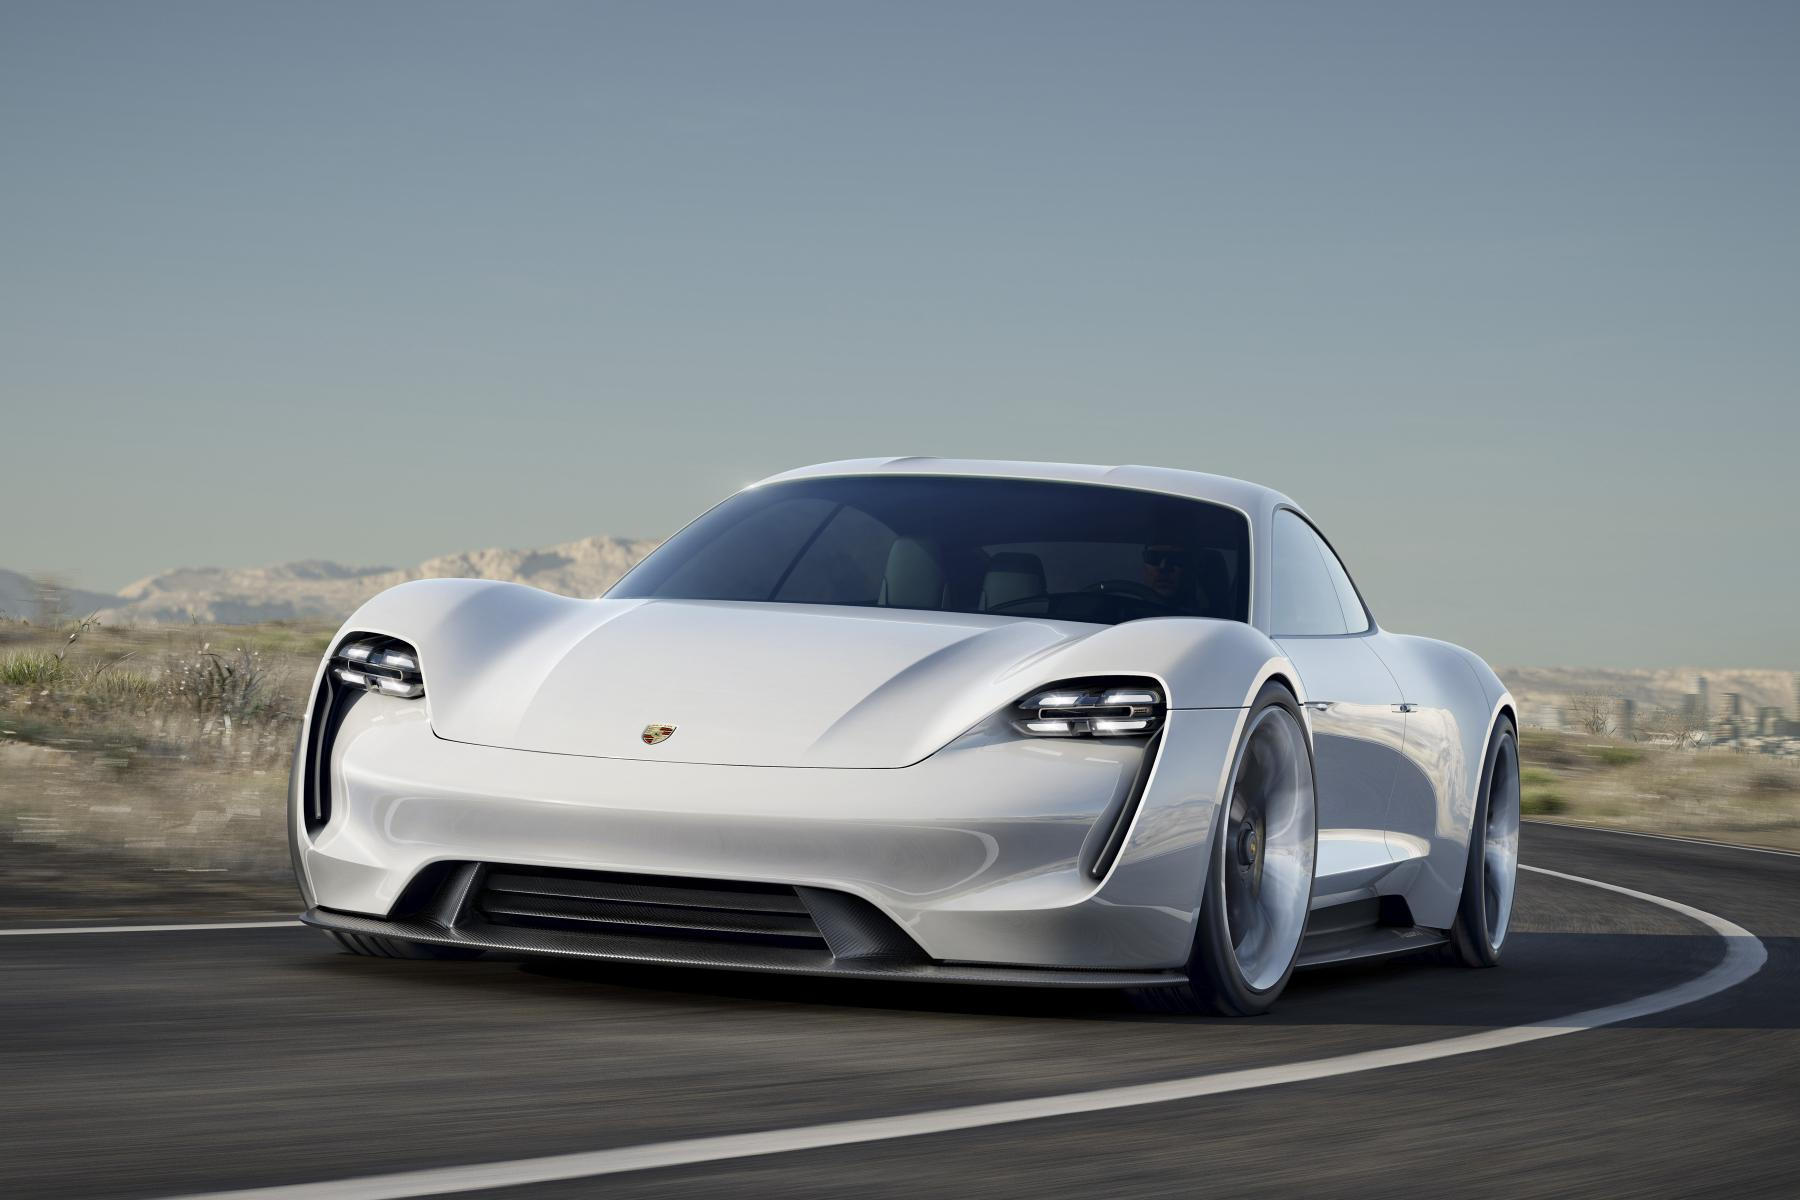 Porsche to Build First Battery-Electric Vehicle